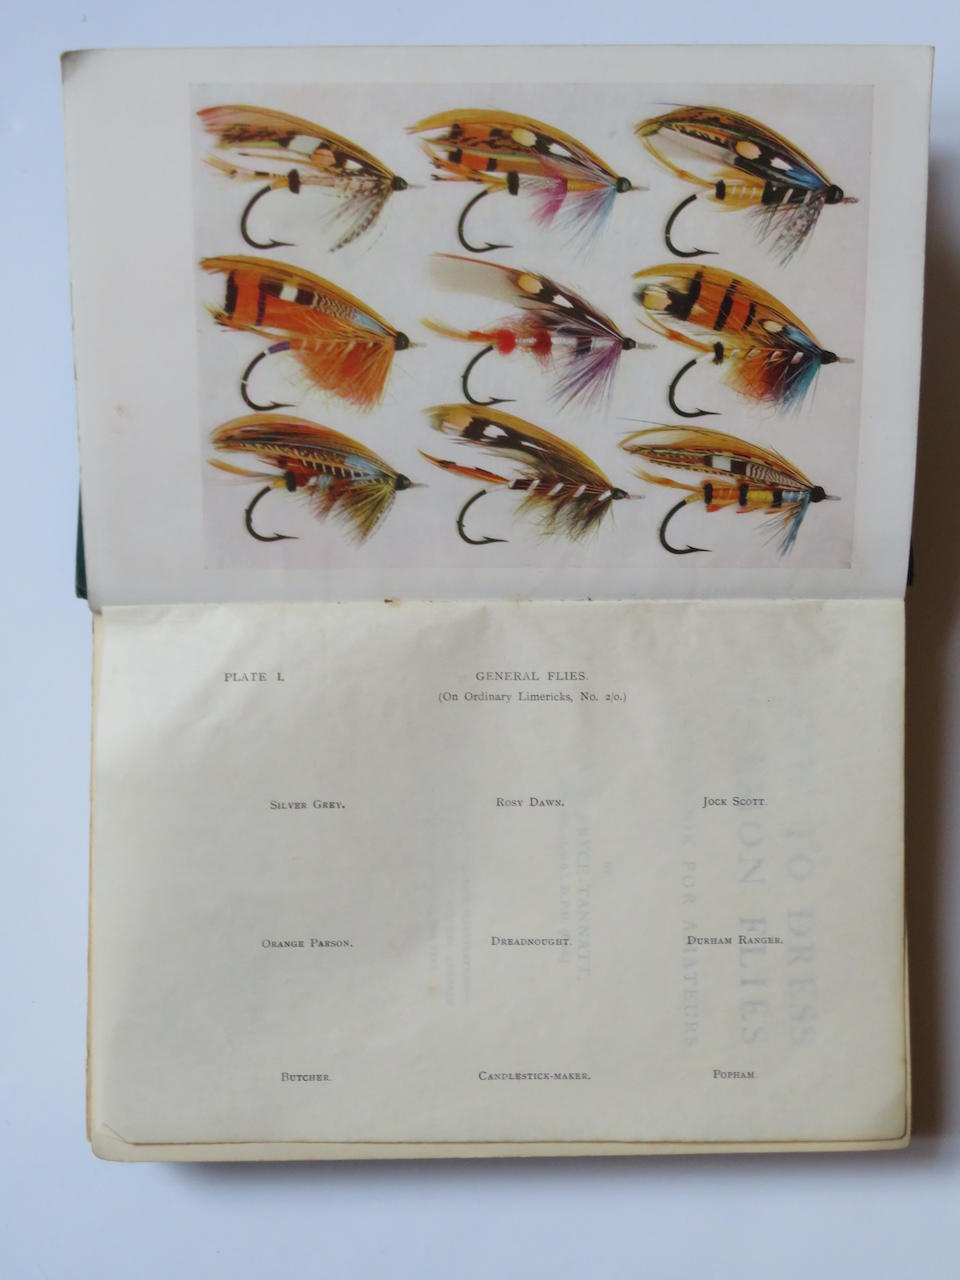 A large framed display of 100 fully-dressed Salmon flies after T.E. Pryce-Tannant and by Anthony Townsend